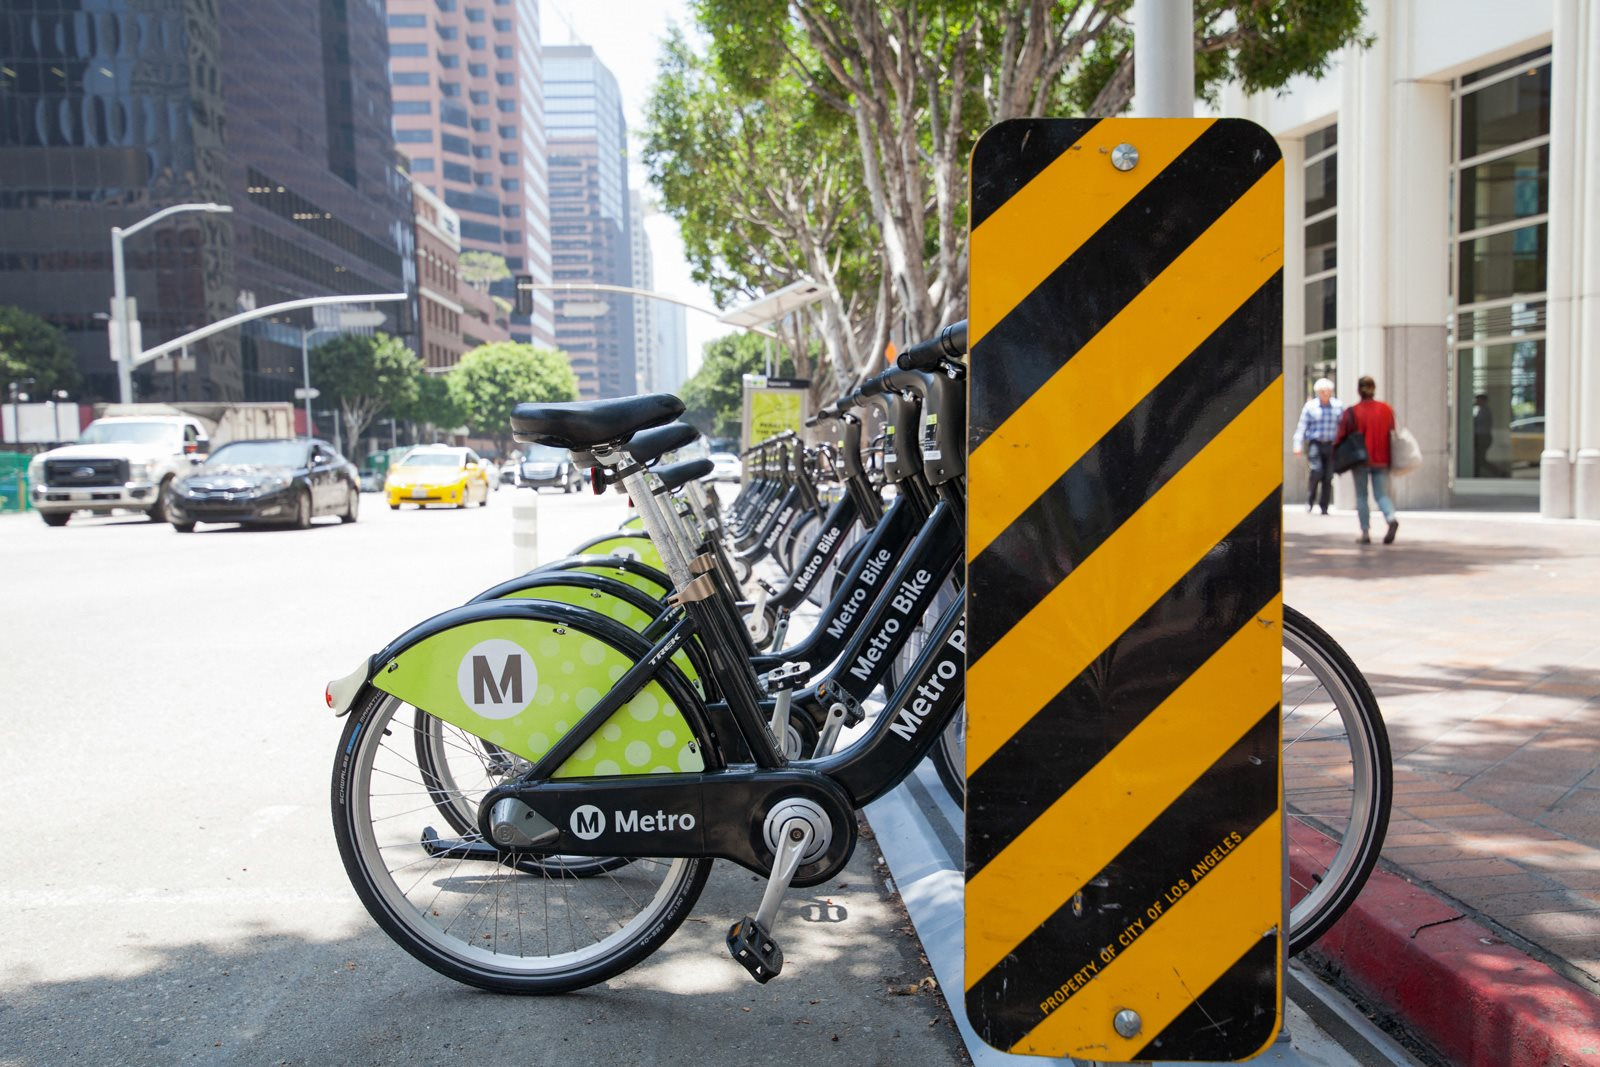 Metro Bike at Renaissance Tower, 501 W. Olympic Boulevard, Los Angeles